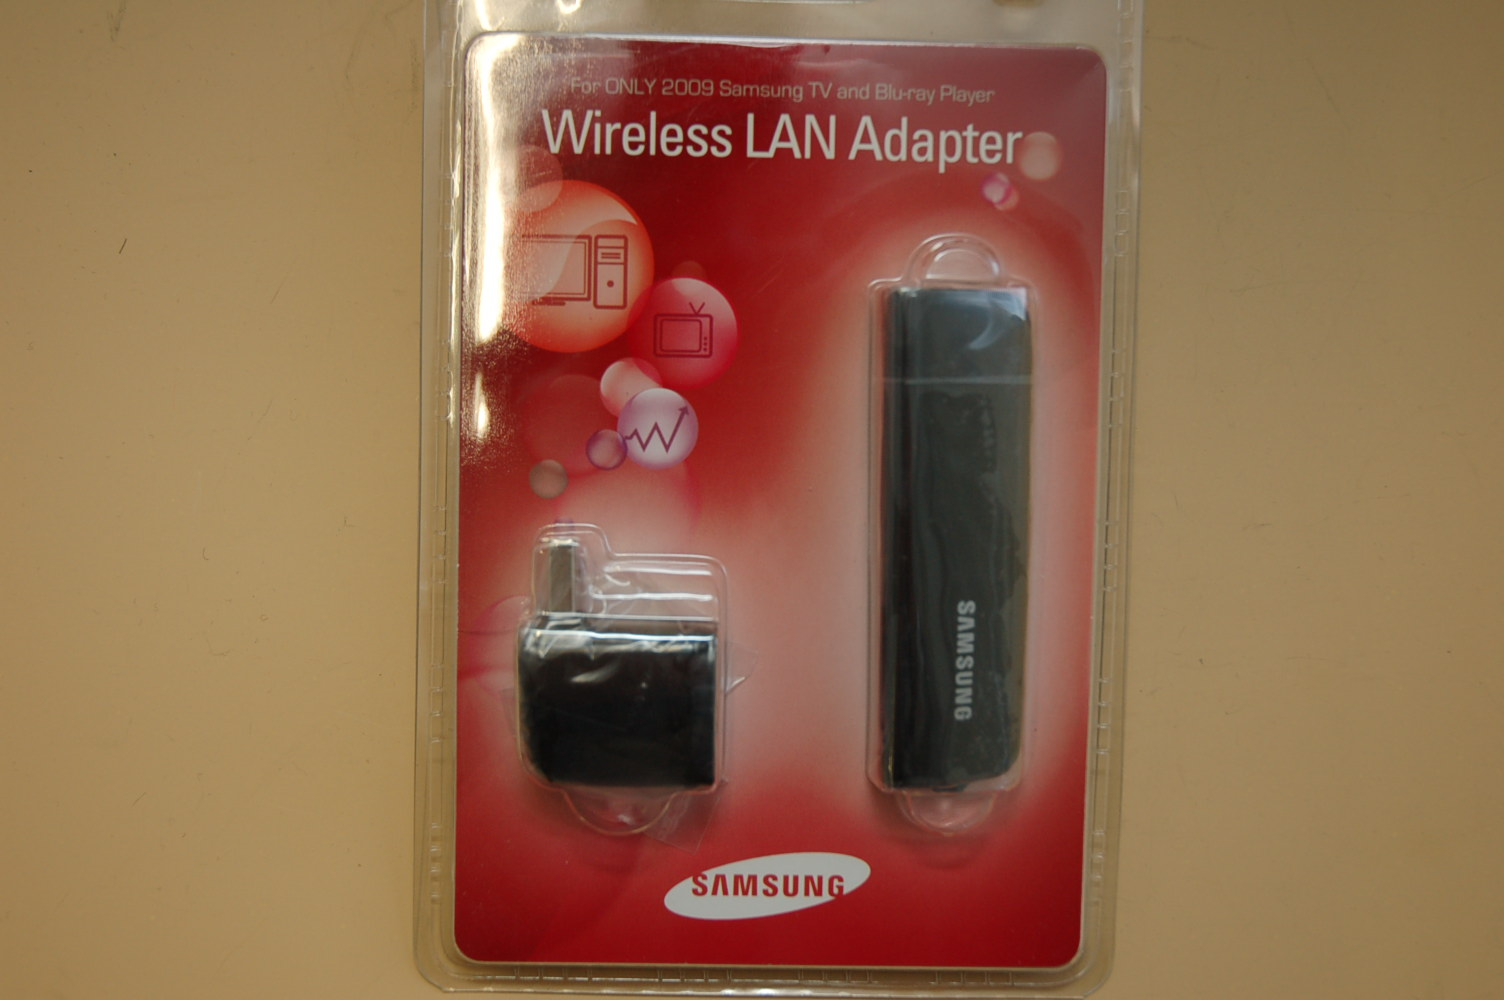 Samsung Wireless LAN Adapter WIS09ABGN